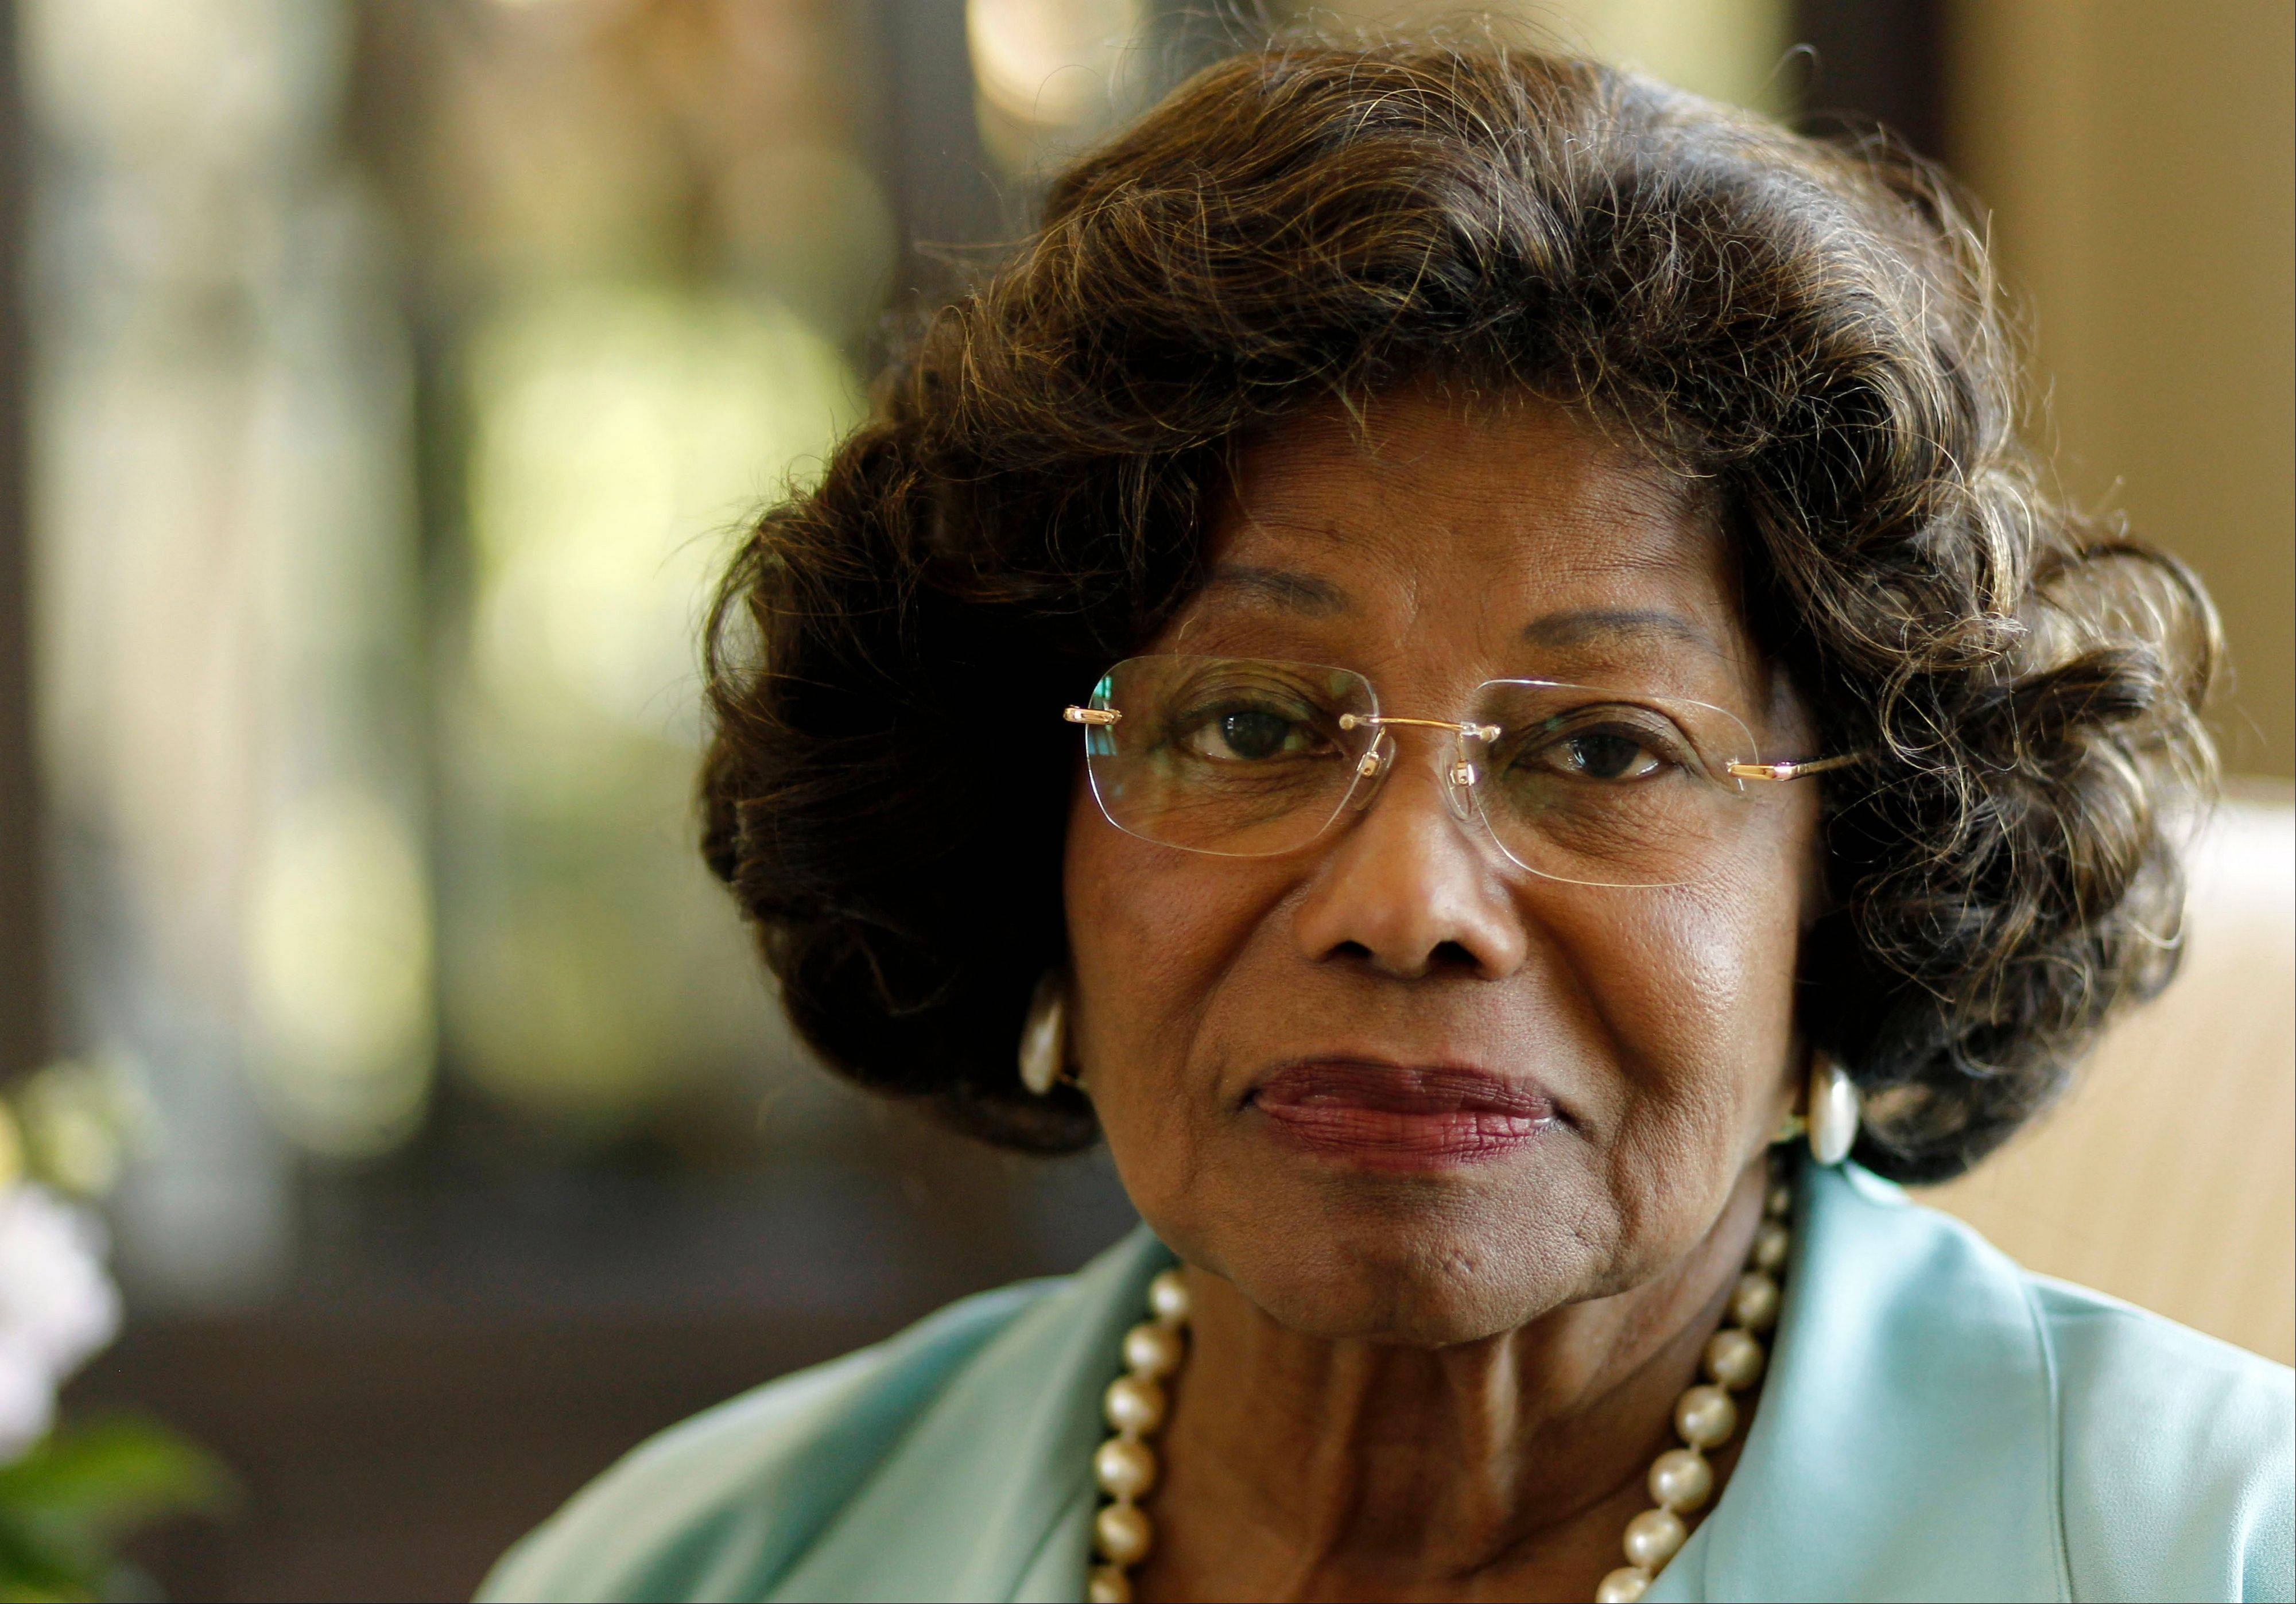 With a jury�s refusal to hold a concert promoter responsible for Michael Jackson�s death, the late singer�s mother, Katherine Jackson, lost perhaps her last best chance to collect millions in damages and place blame for her son�s untimely demise.